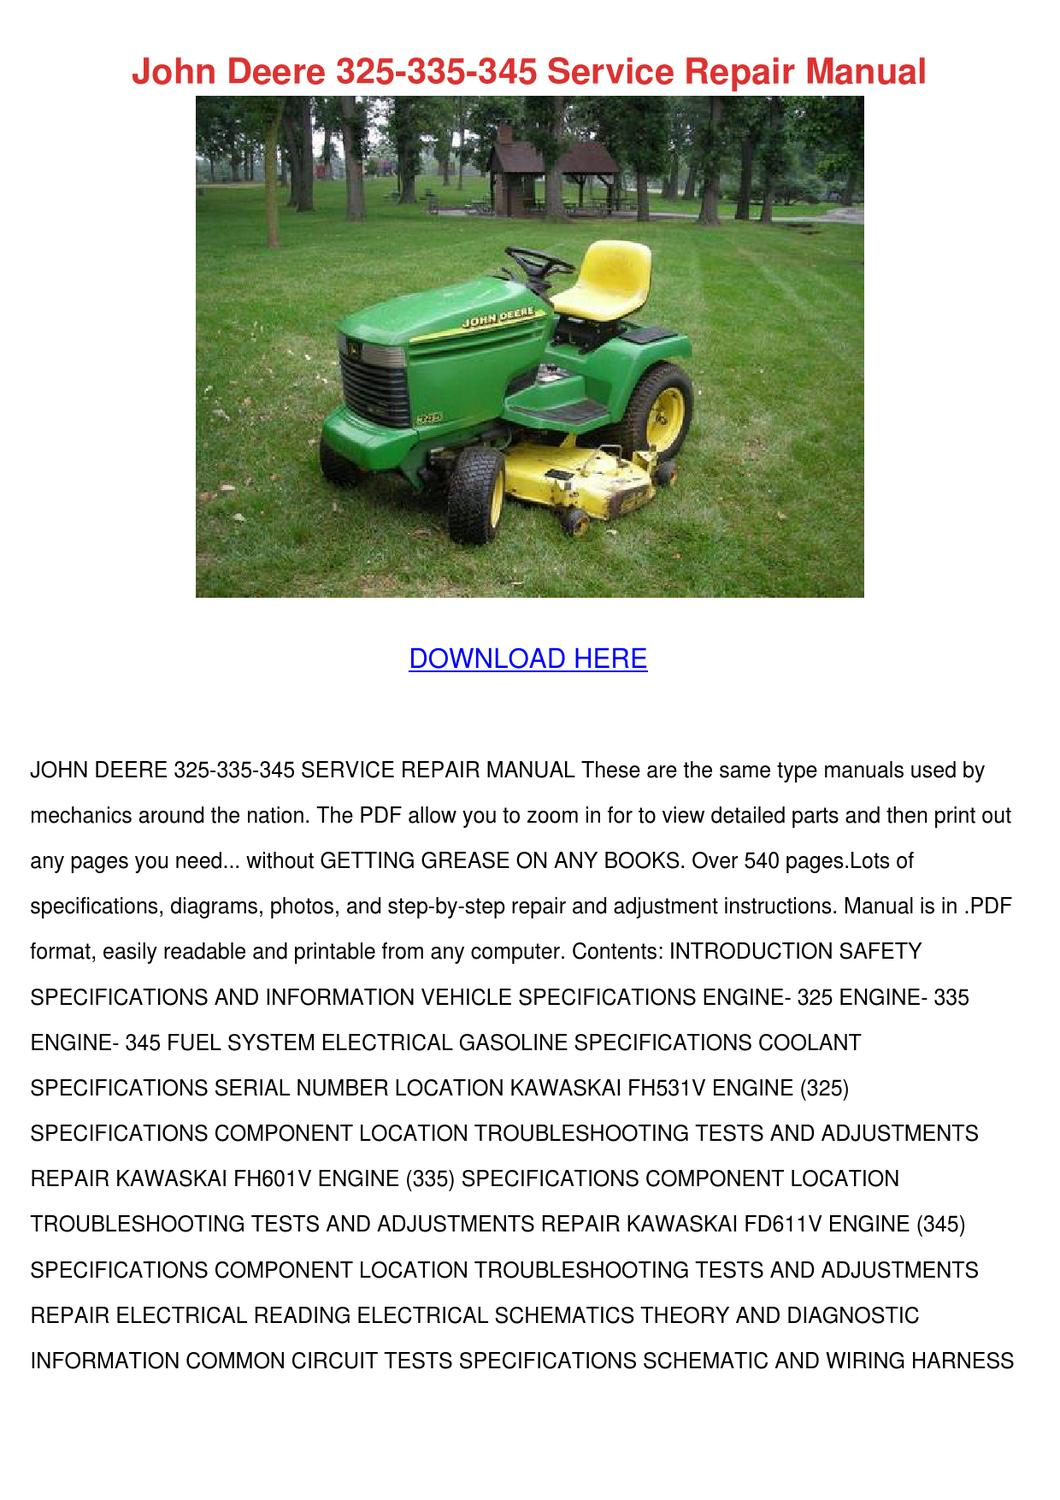 john deere 325 335 345 service repair manual by kari mabey issuujohn deere 325 335 345 service repair manual